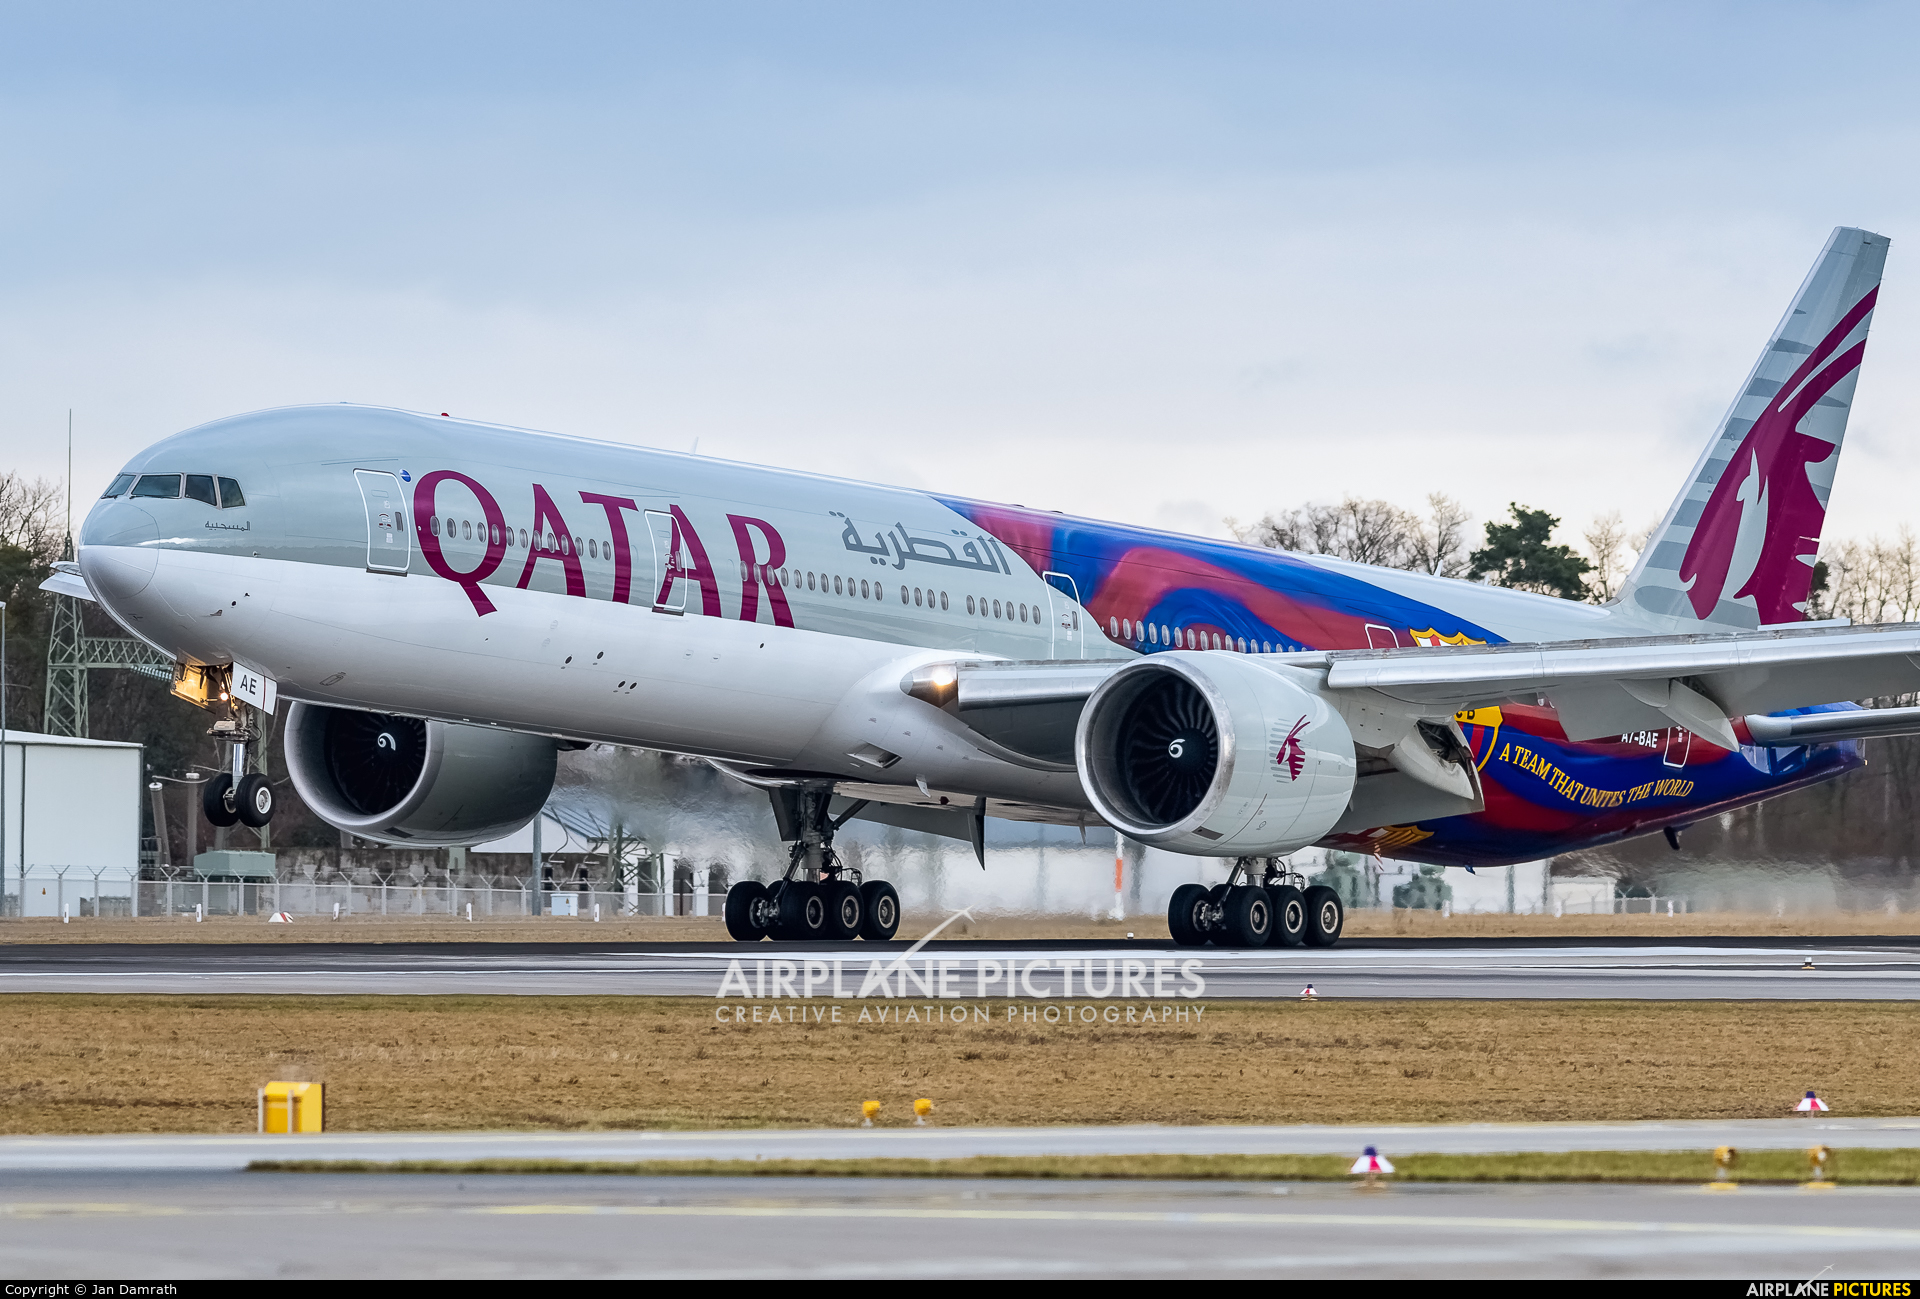 Qatar Airways A7-BAE aircraft at Frankfurt